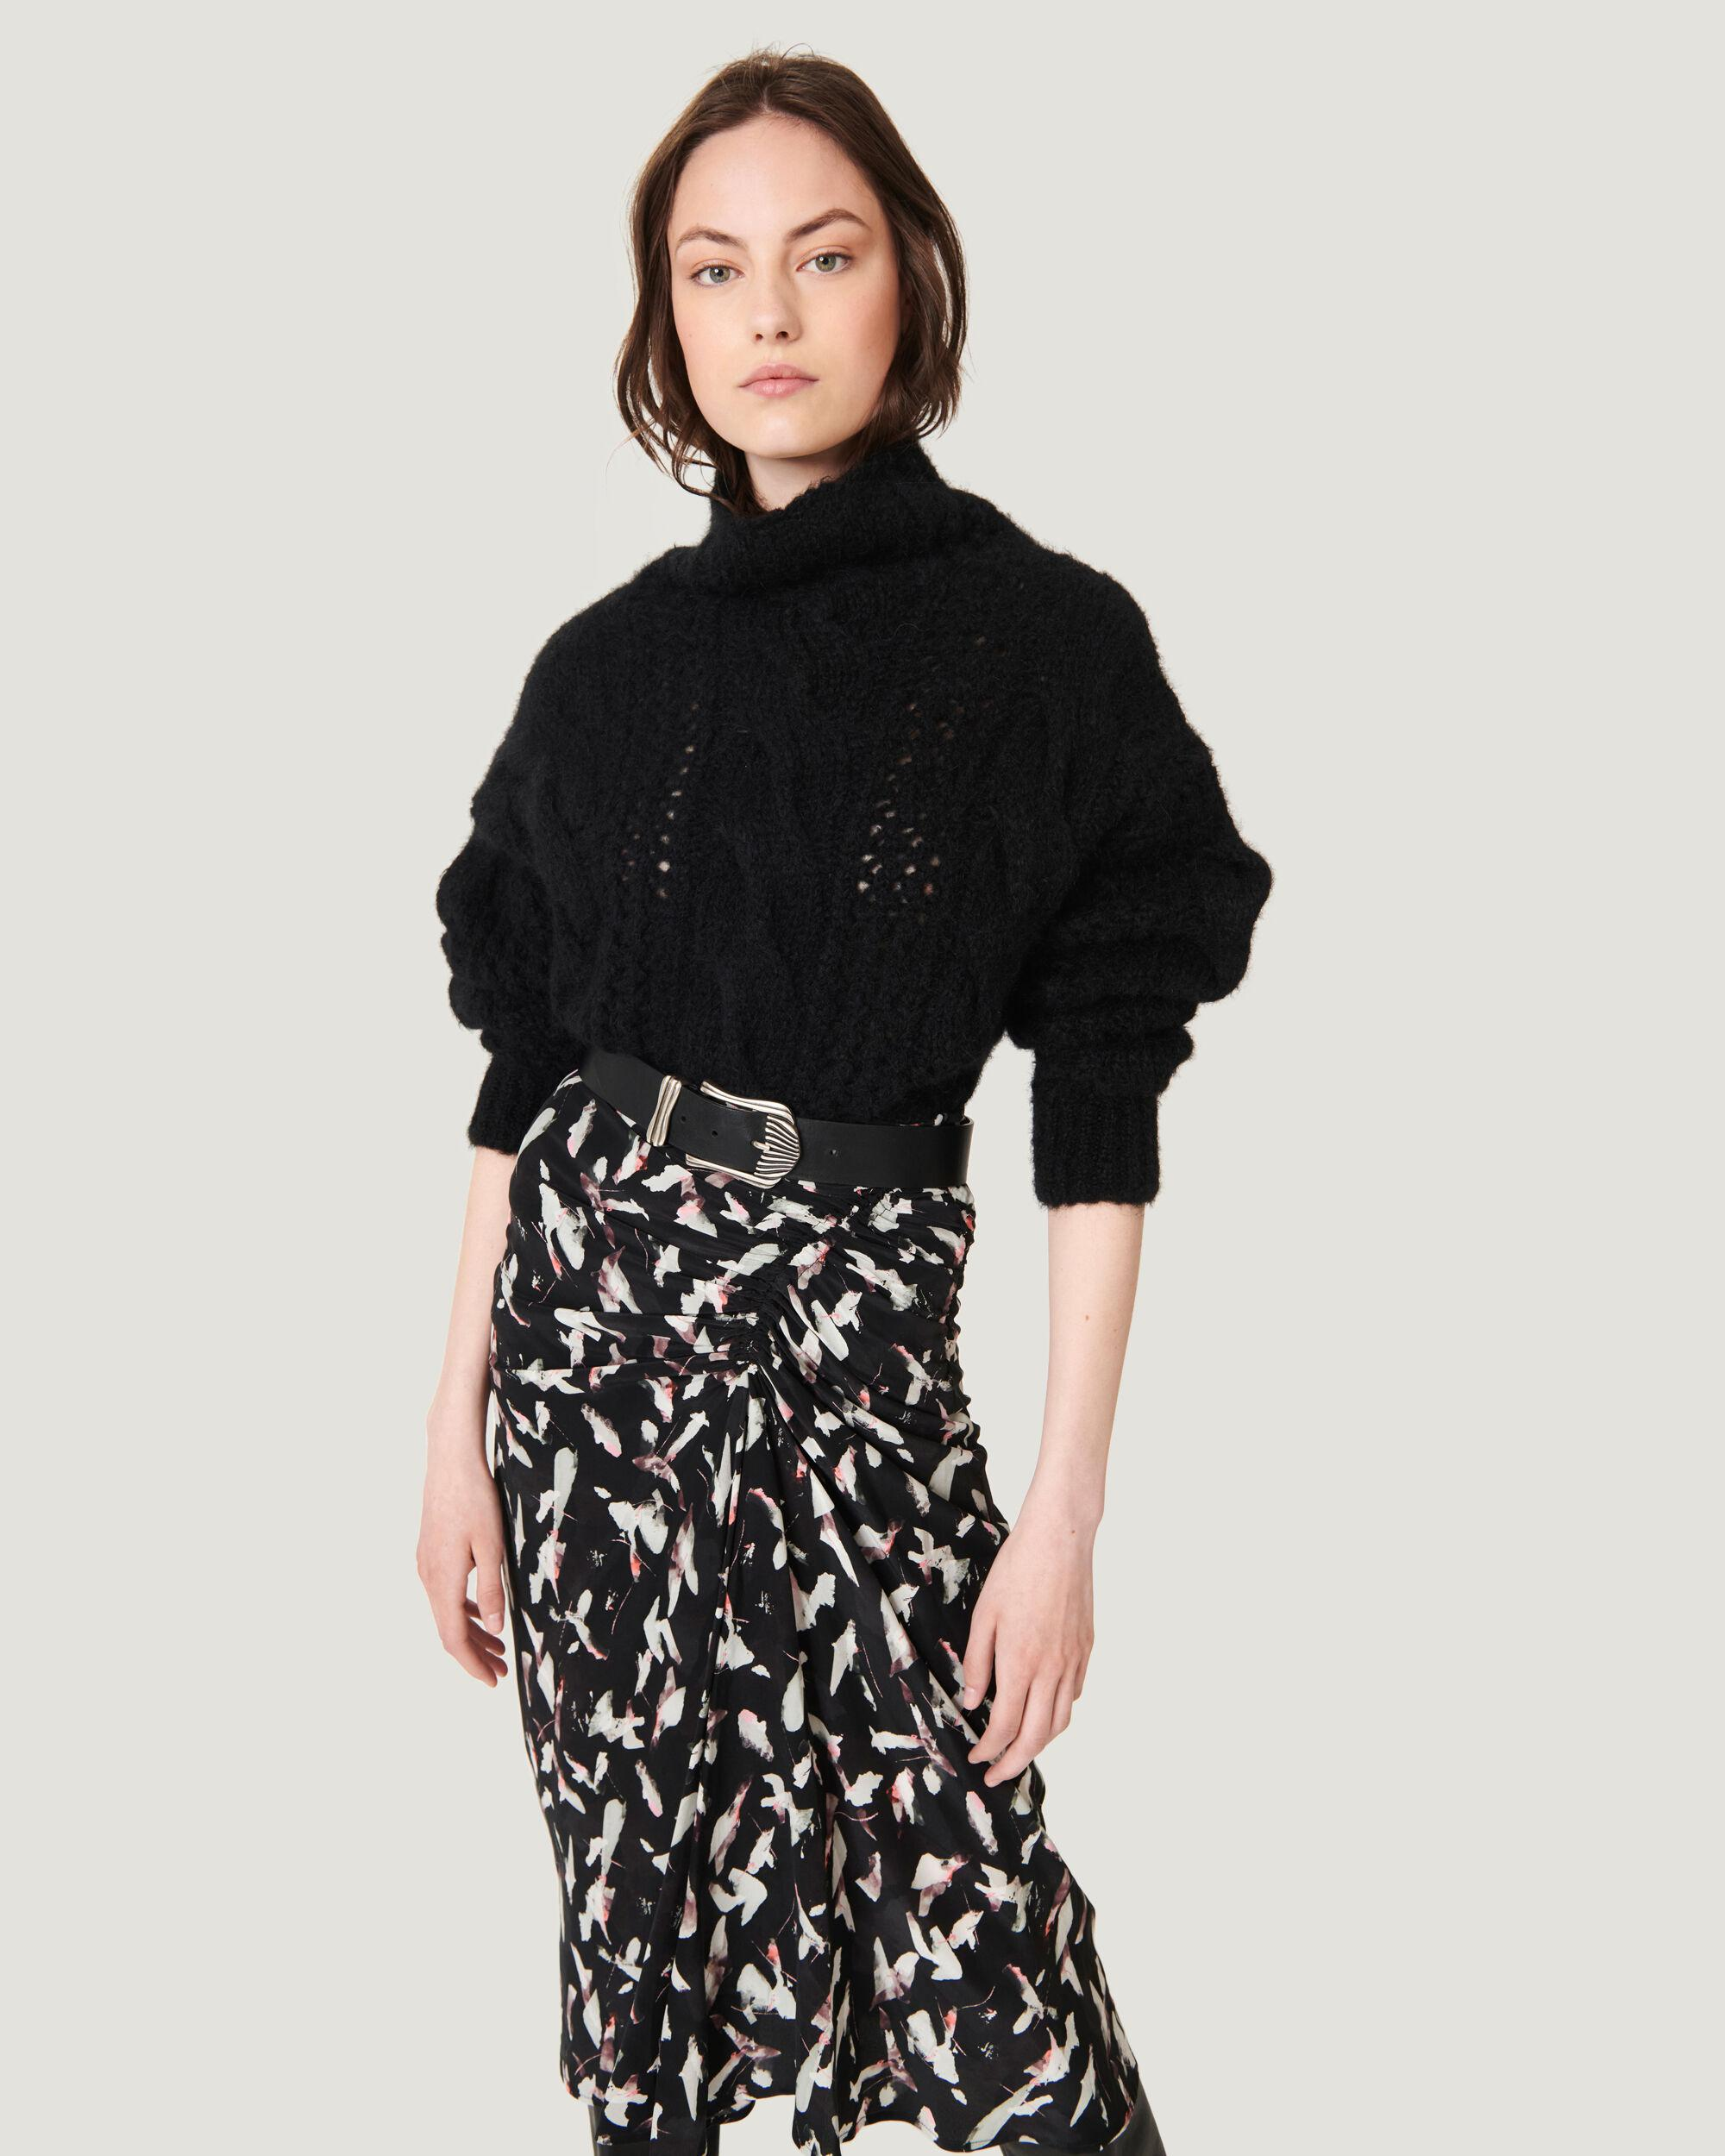 FIBY RELAXED CABLEKNIT TURTLENECK SWEATER